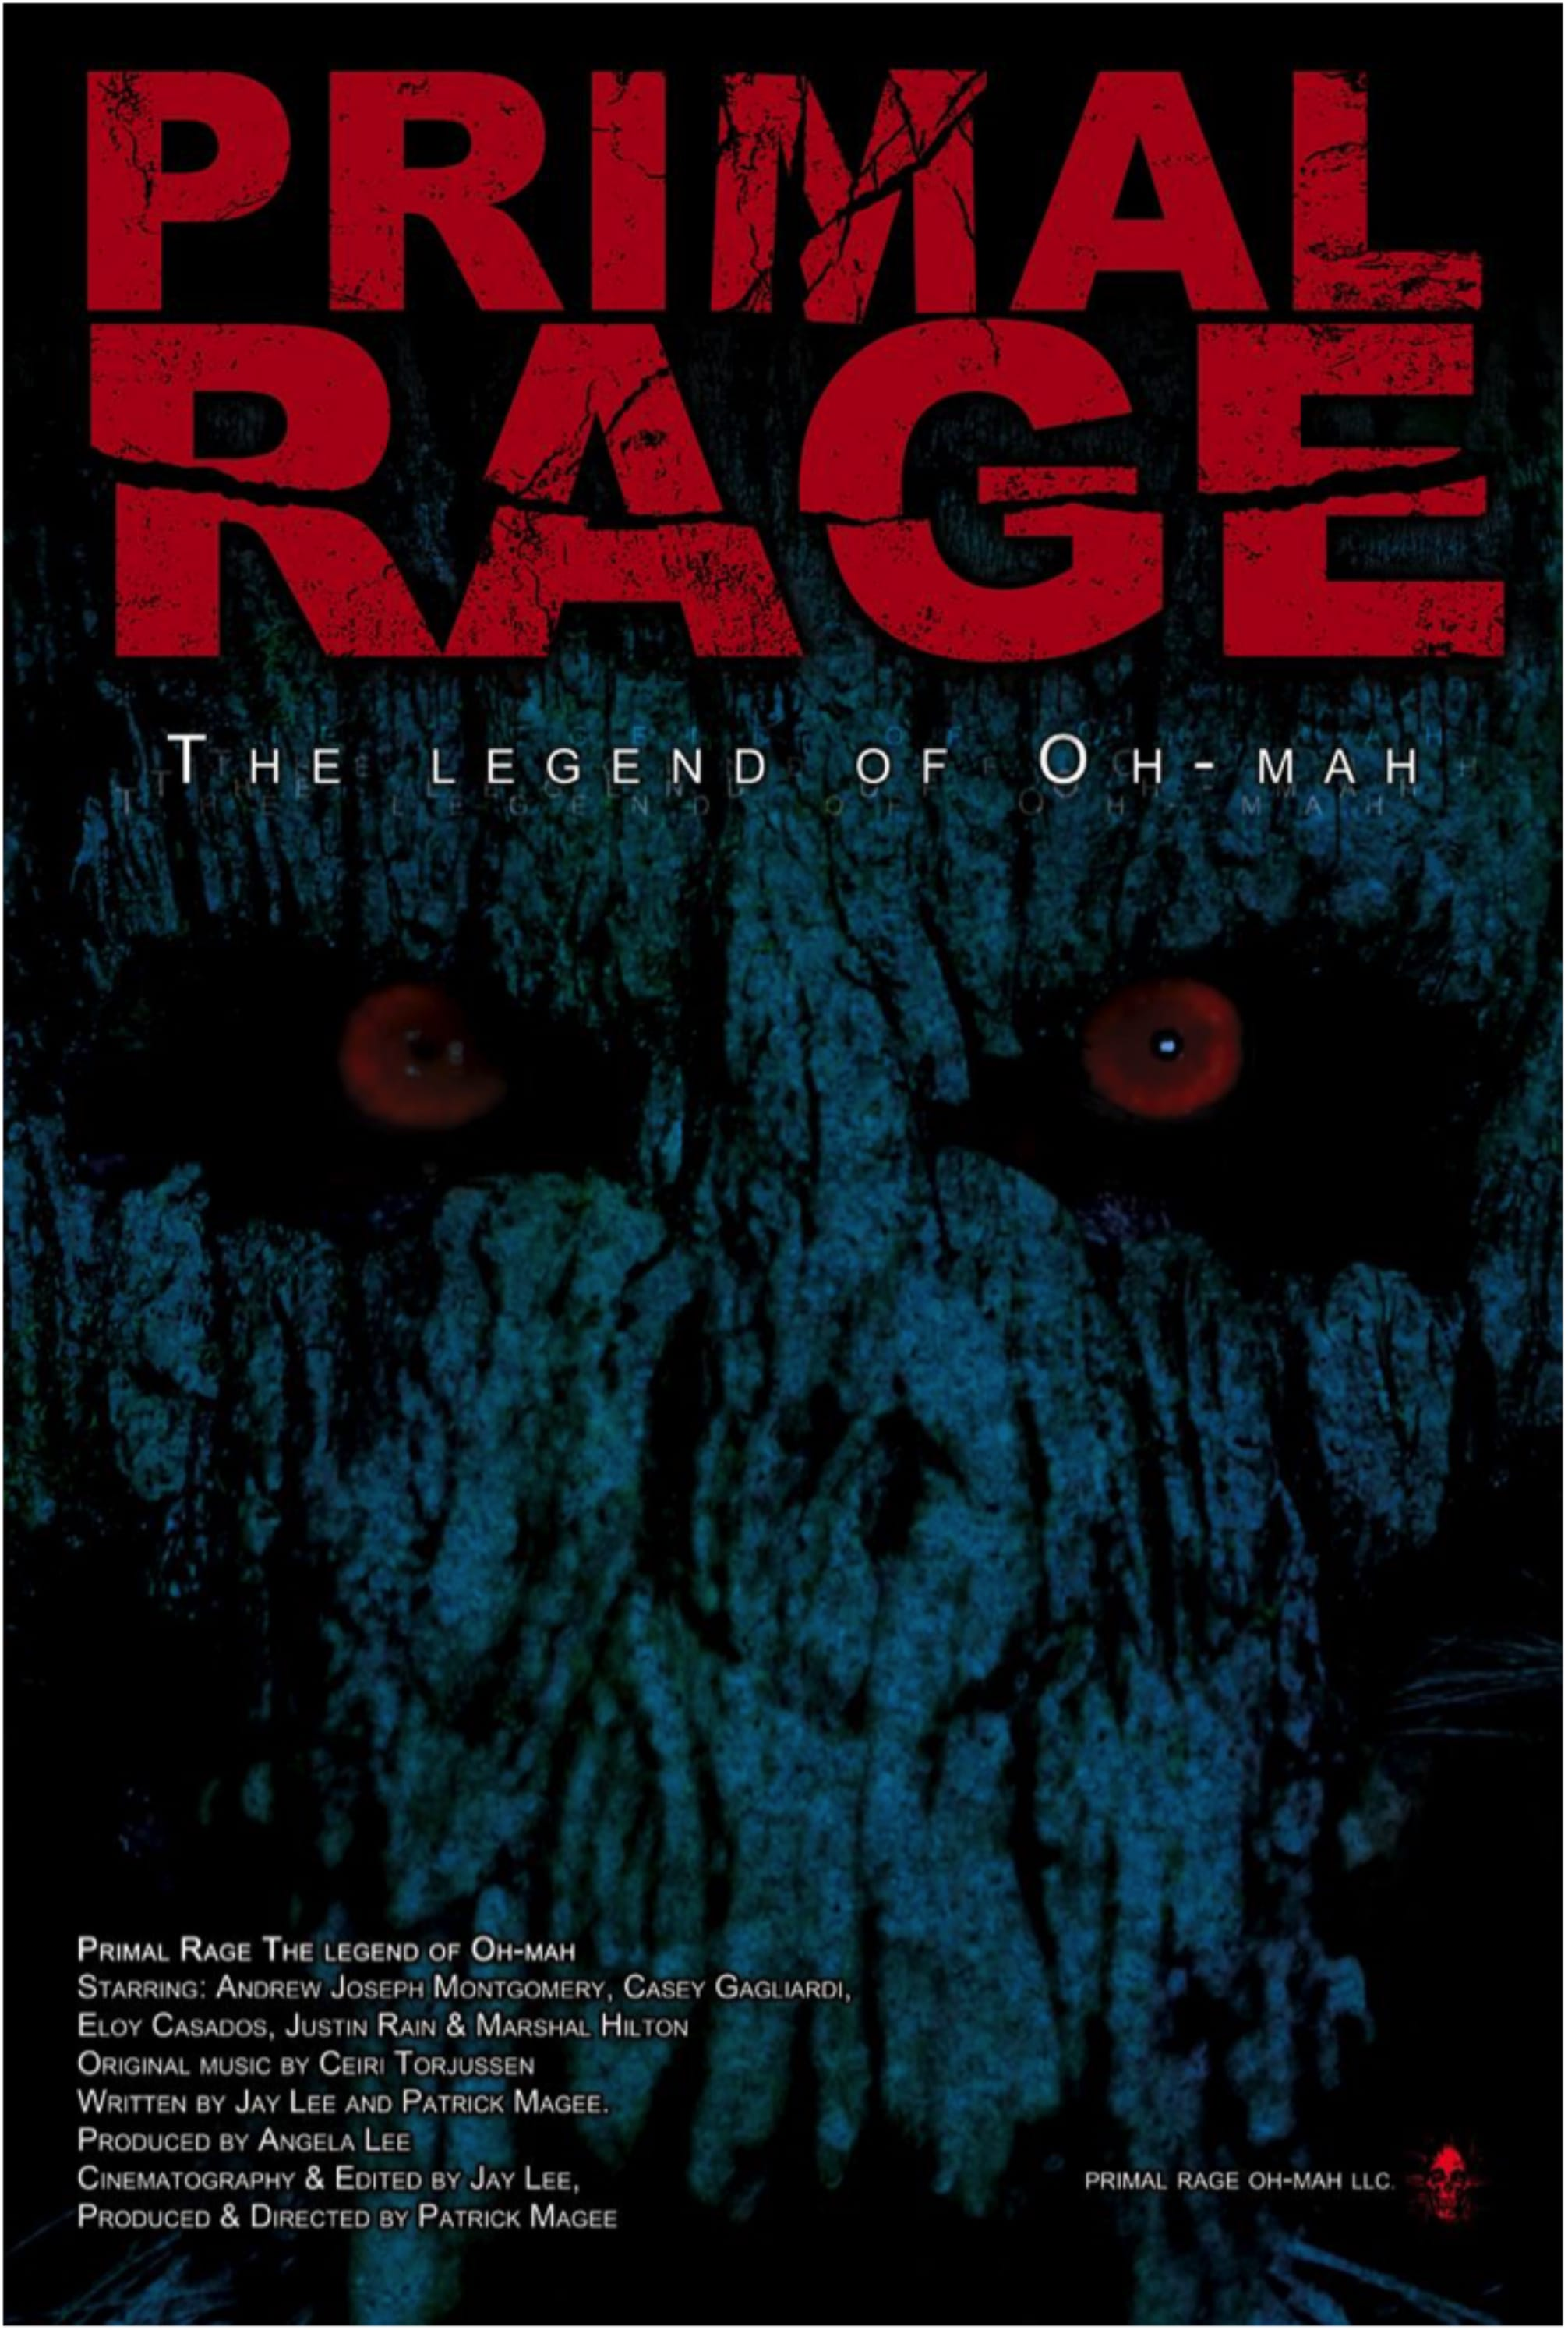 Primal Rage: The Legend of Oh-Mah (2016)